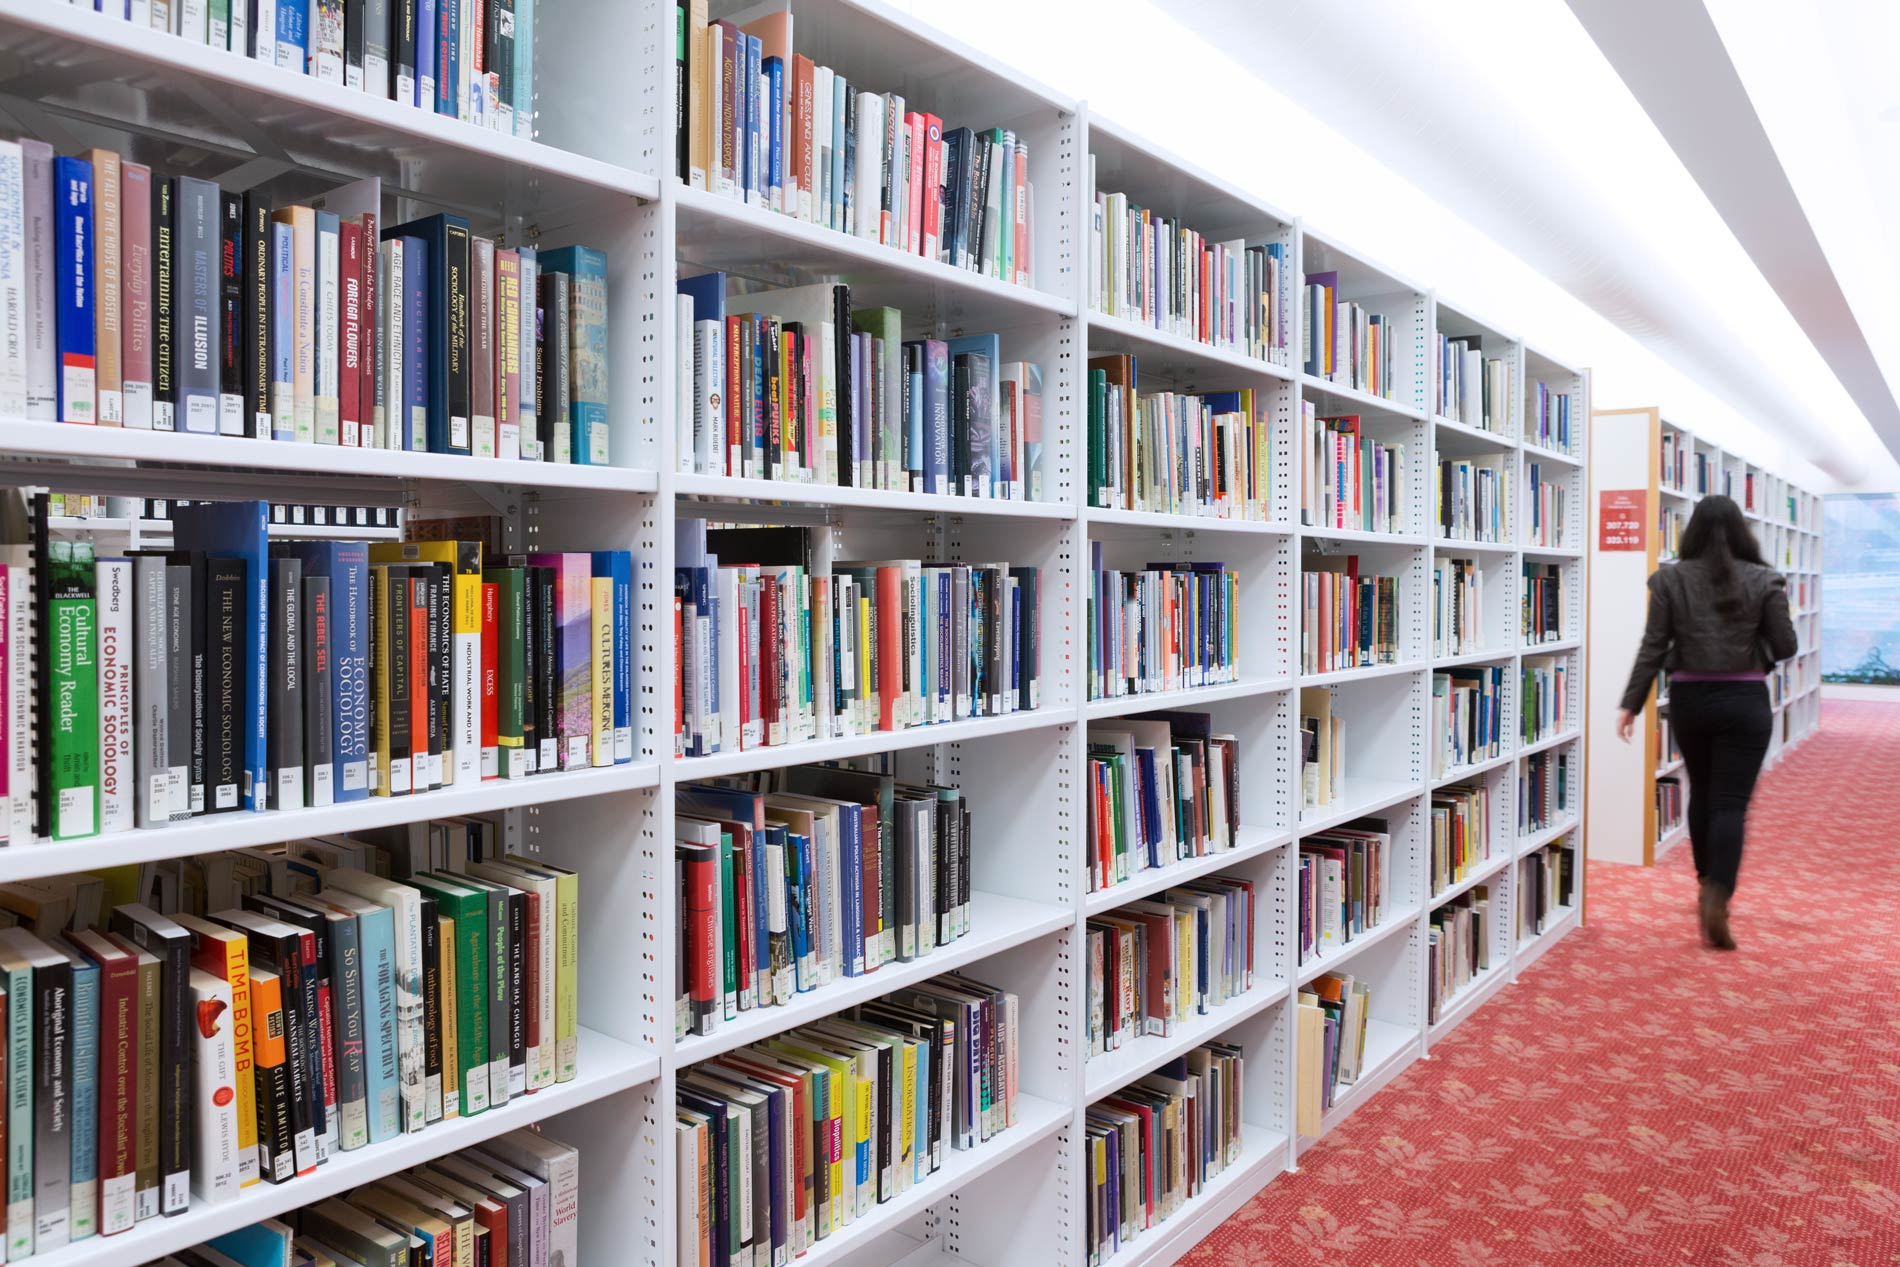 Book shelves in the State Library. Photo by Jeff Camden.